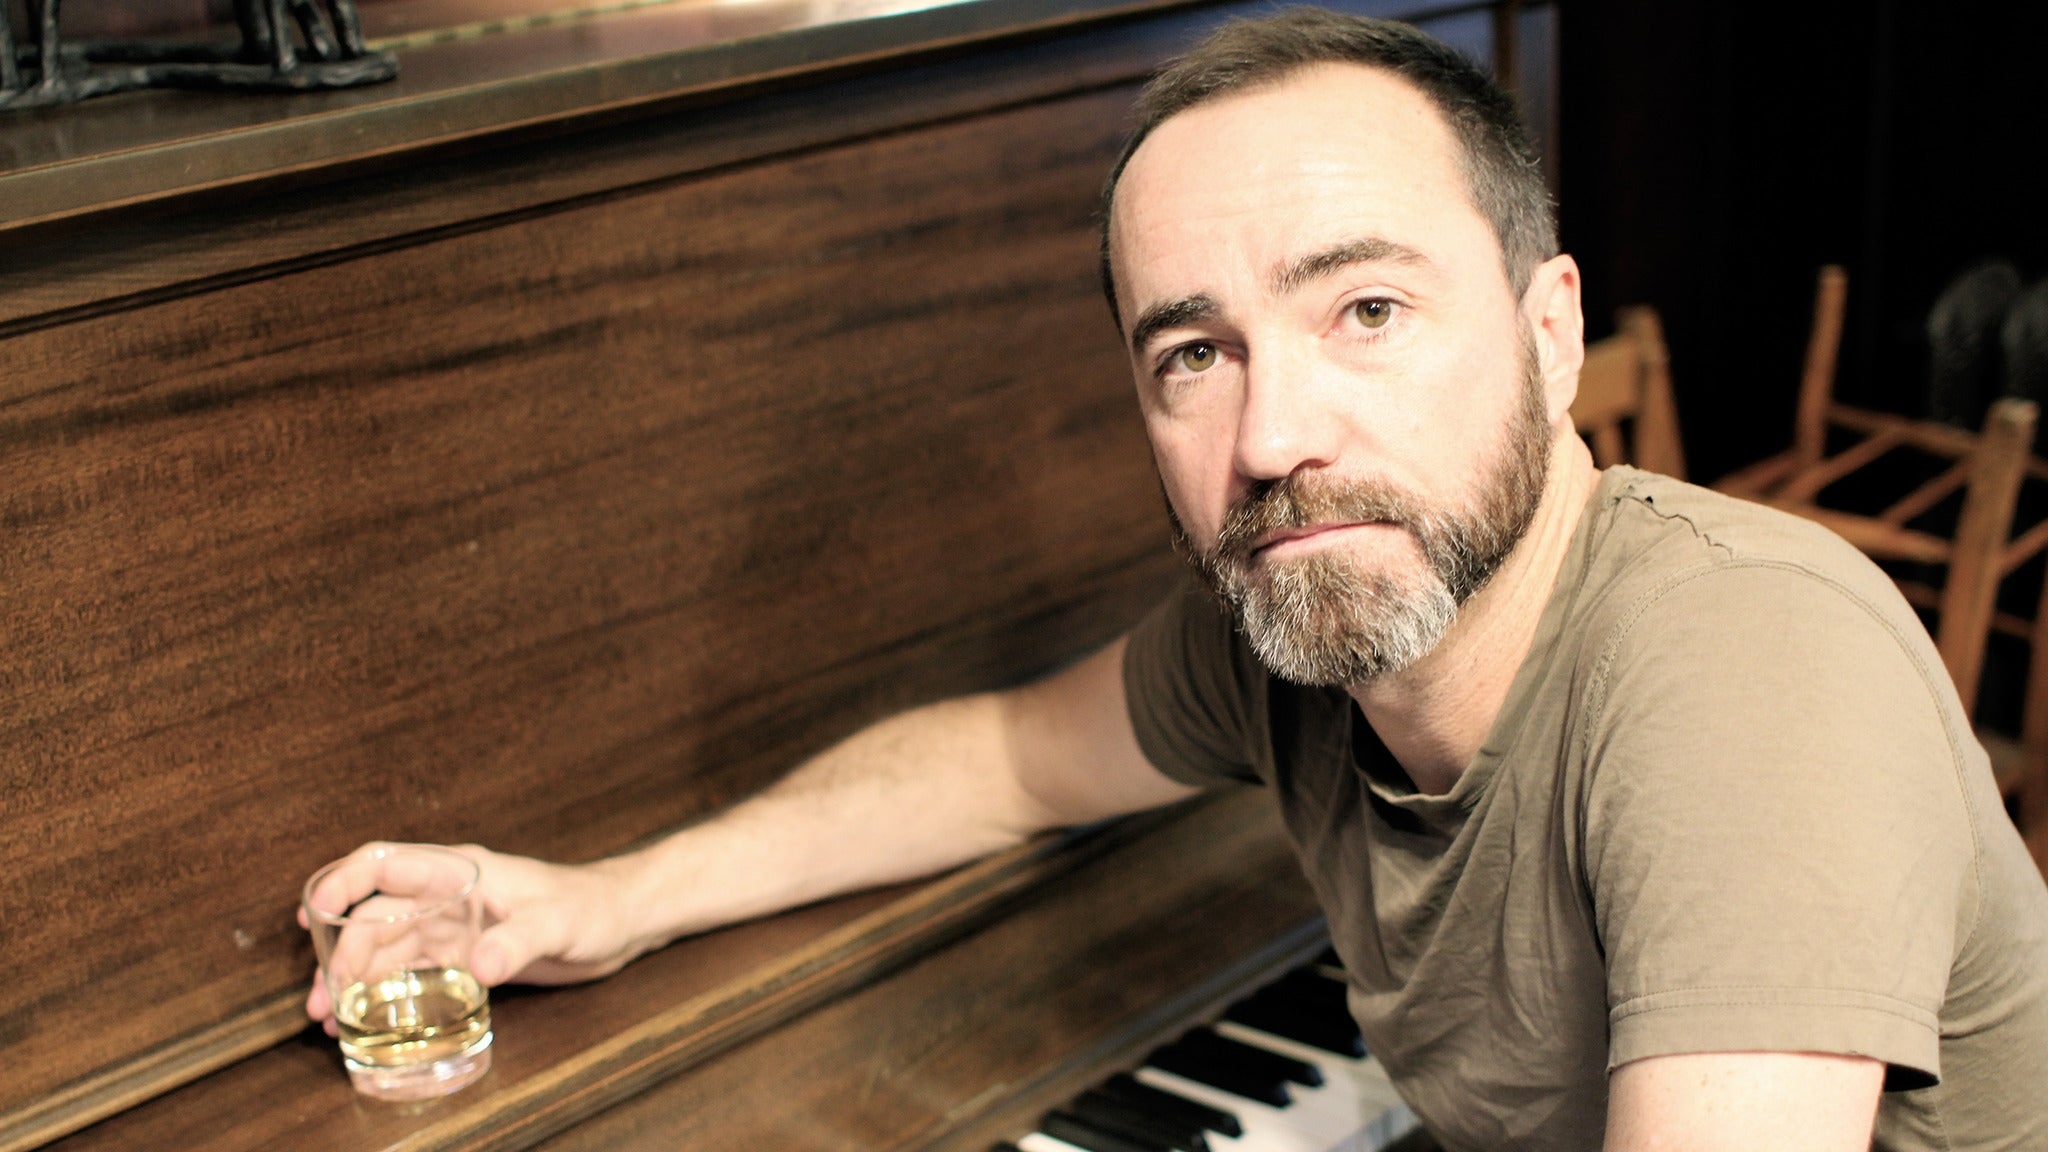 92.5 The River presents The Shins at House of Blues Boston